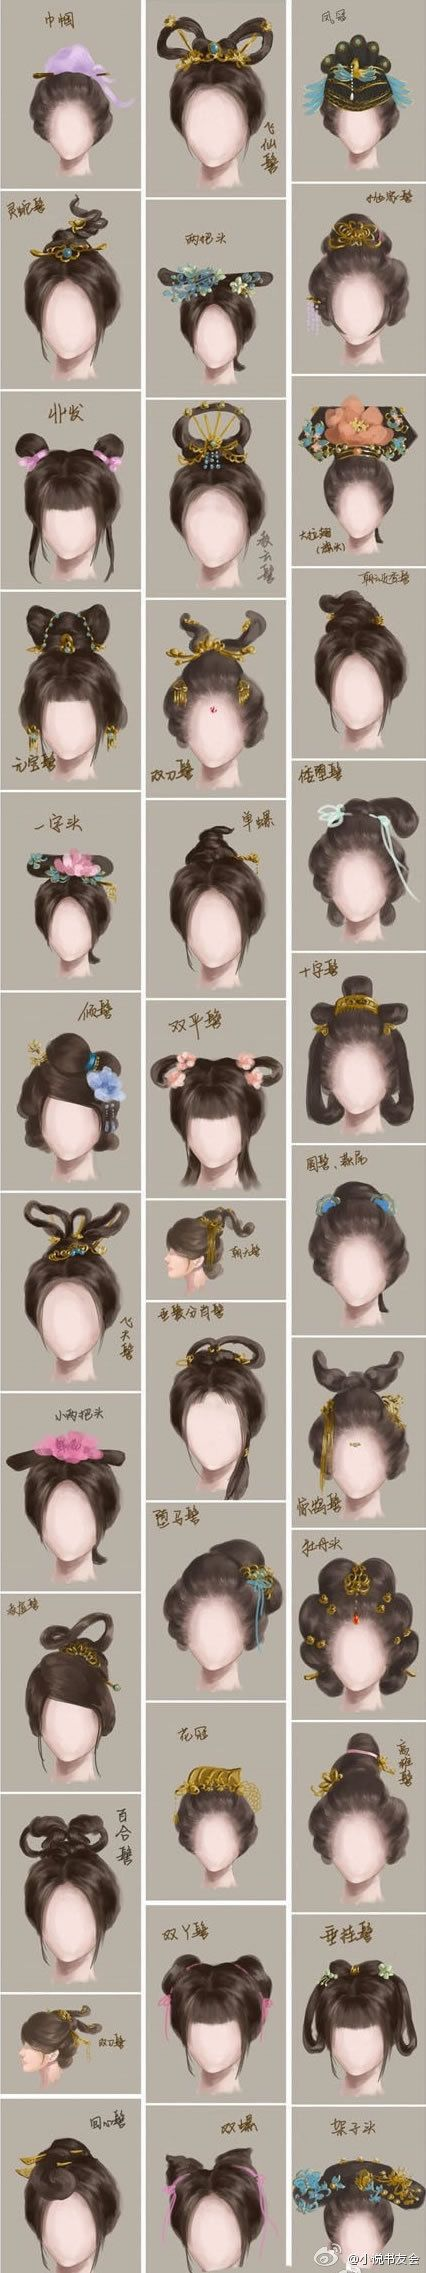 collection...ancient chinese hair styles. Support local barbers & beauticians at www.facebook.com/barber2beauty